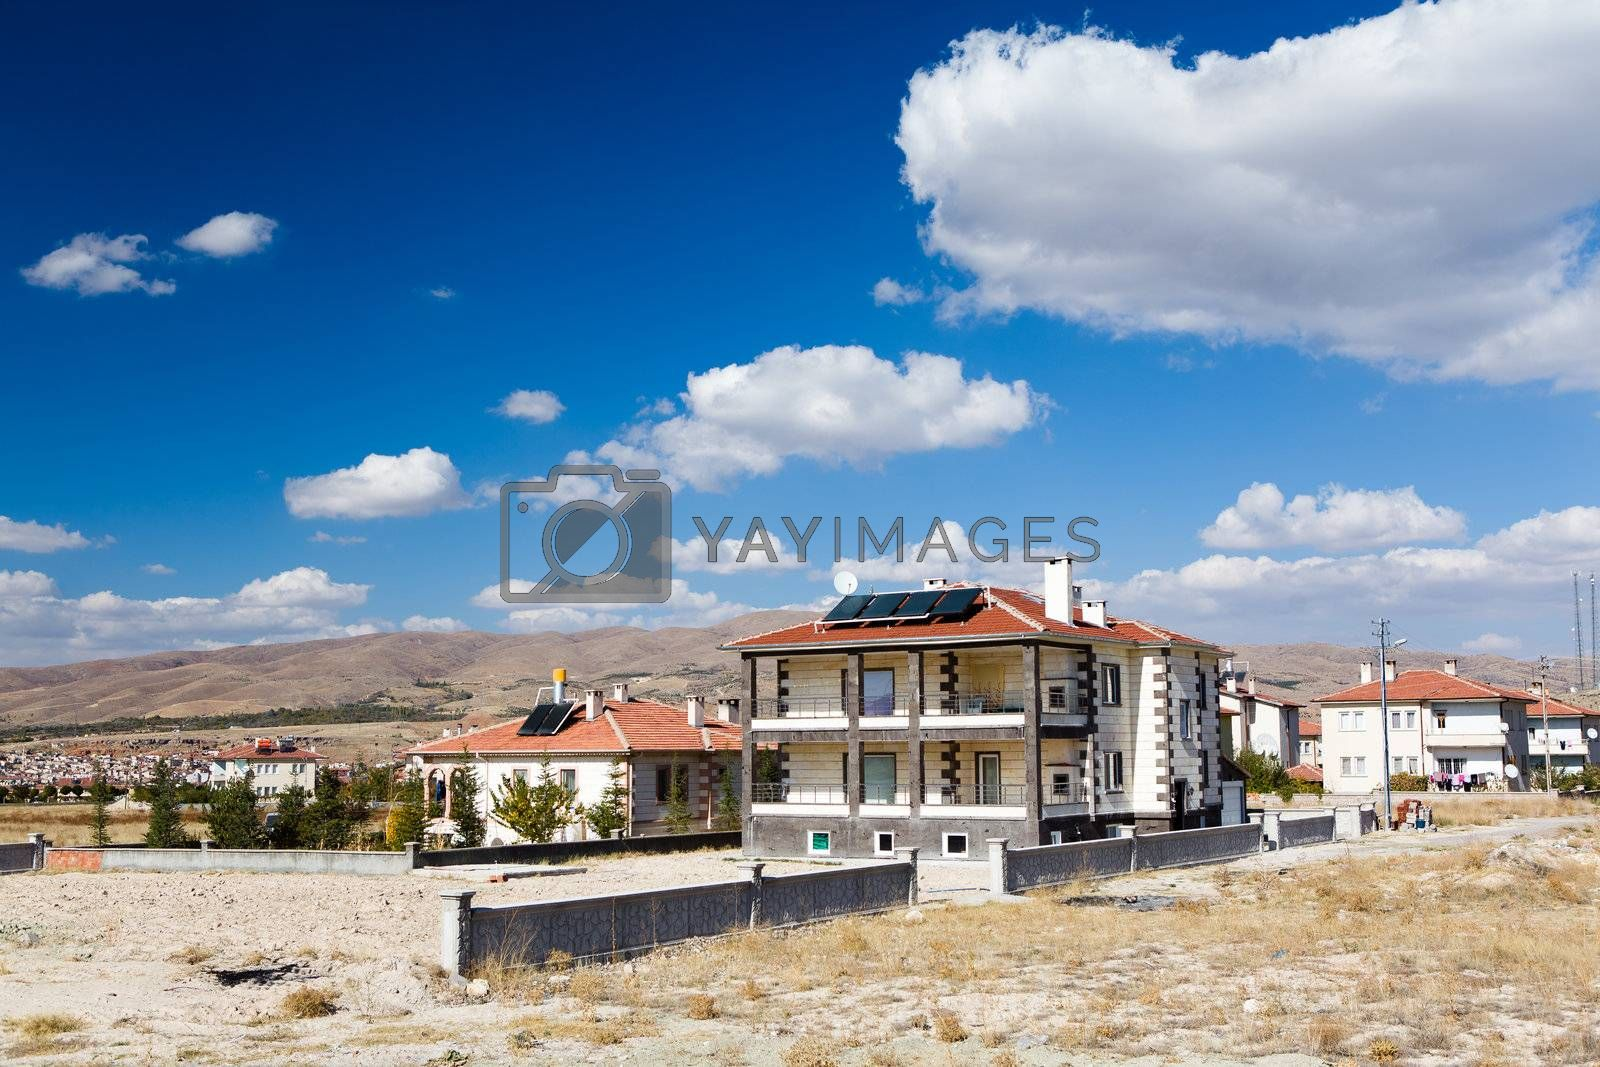 Houses with solar panels on red roofs under blue sky